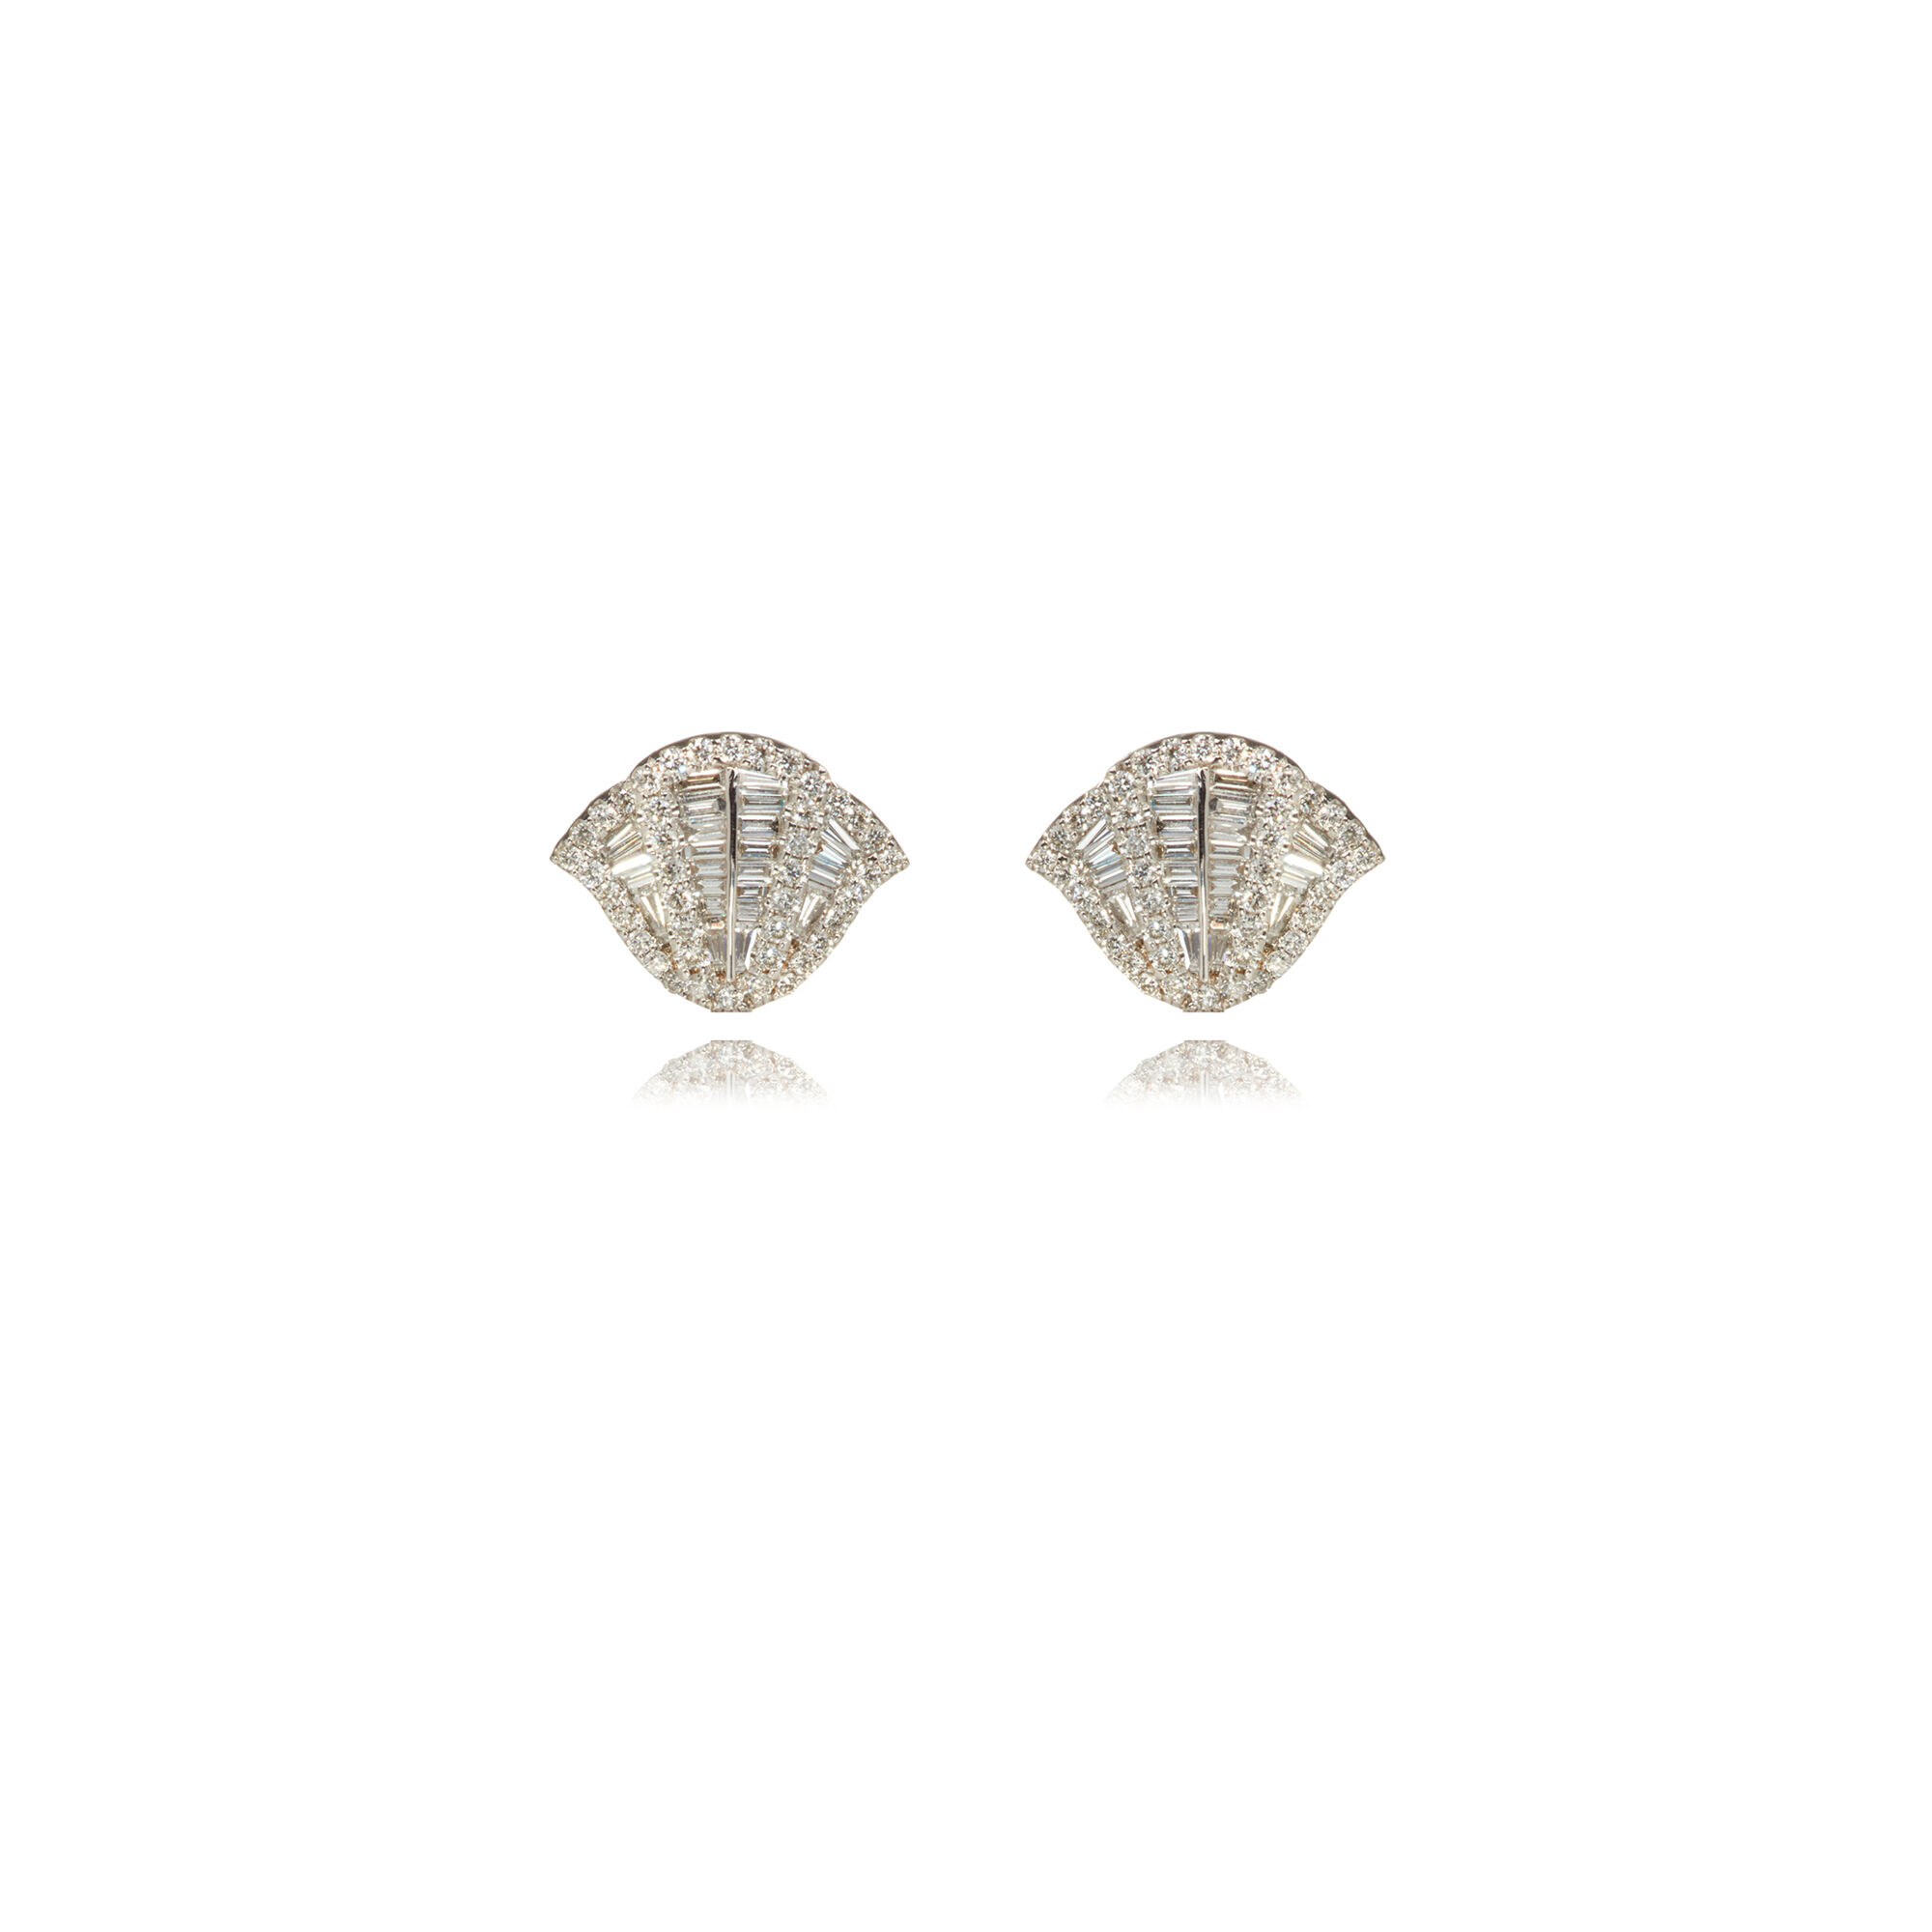 Flamenco 18ct White Gold 0 72 Ct Diamond Stud Earrings